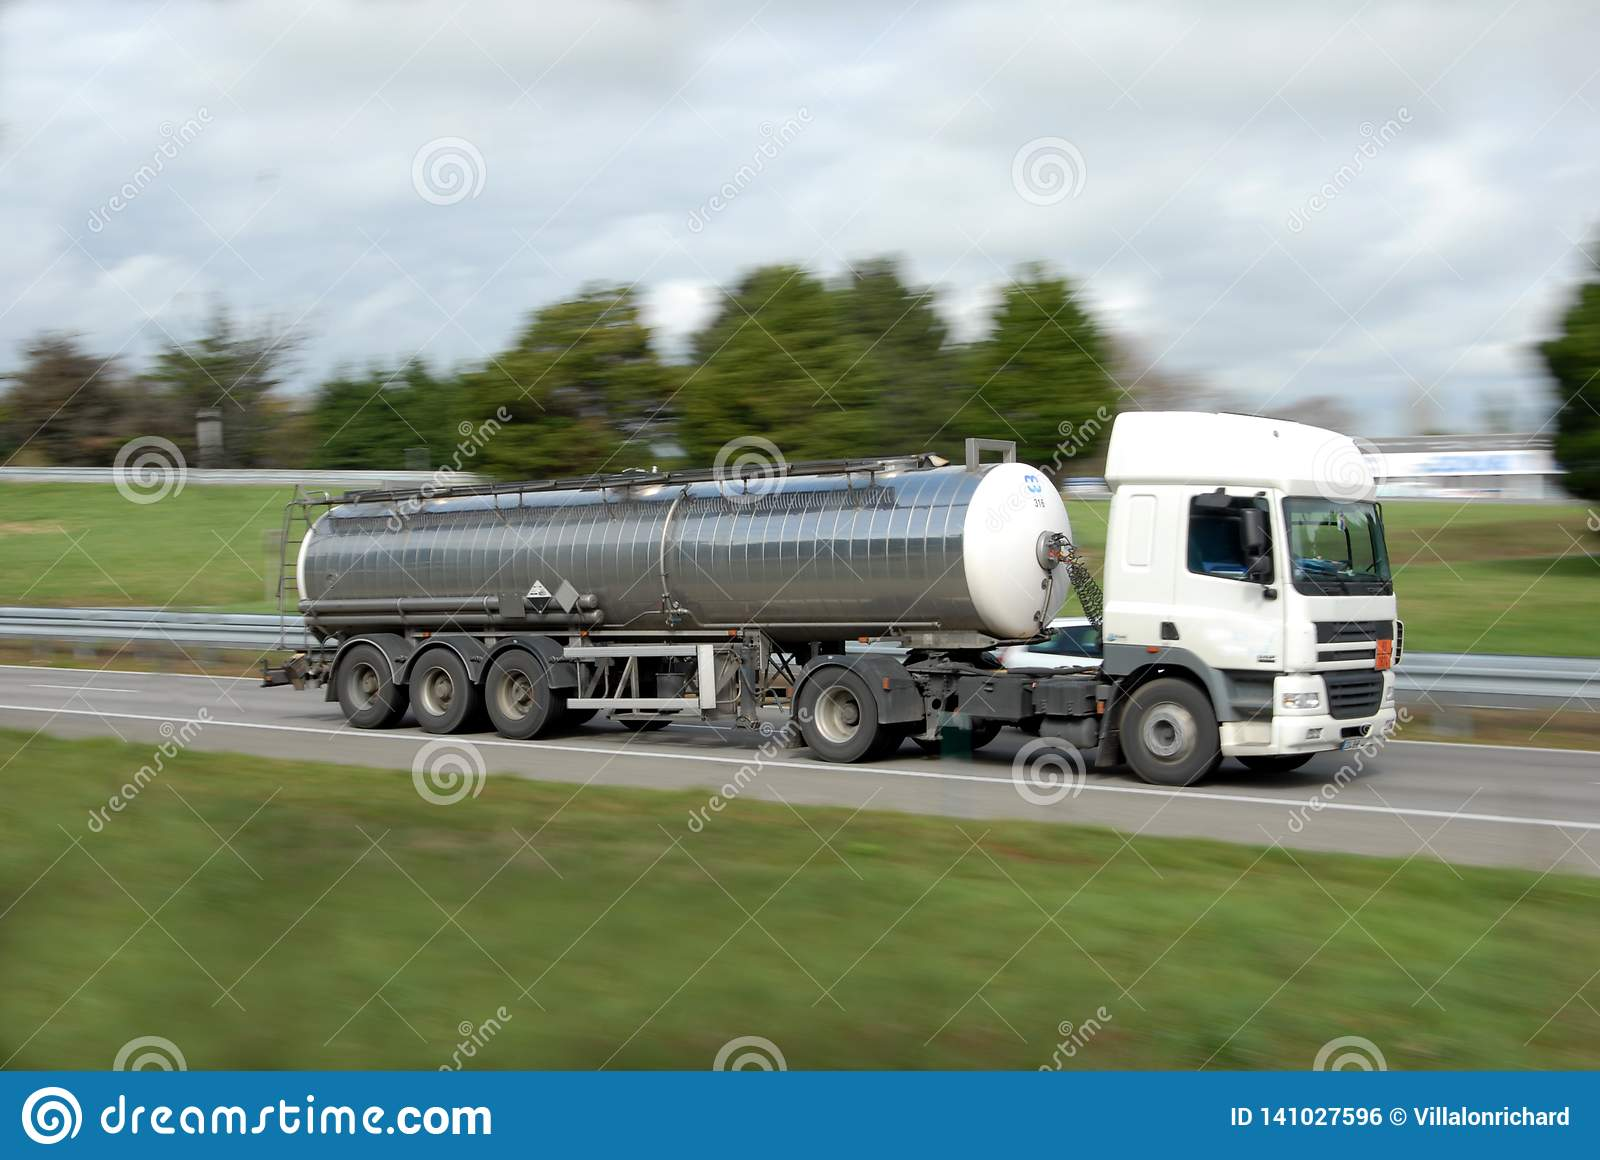 A tanker truck on a road